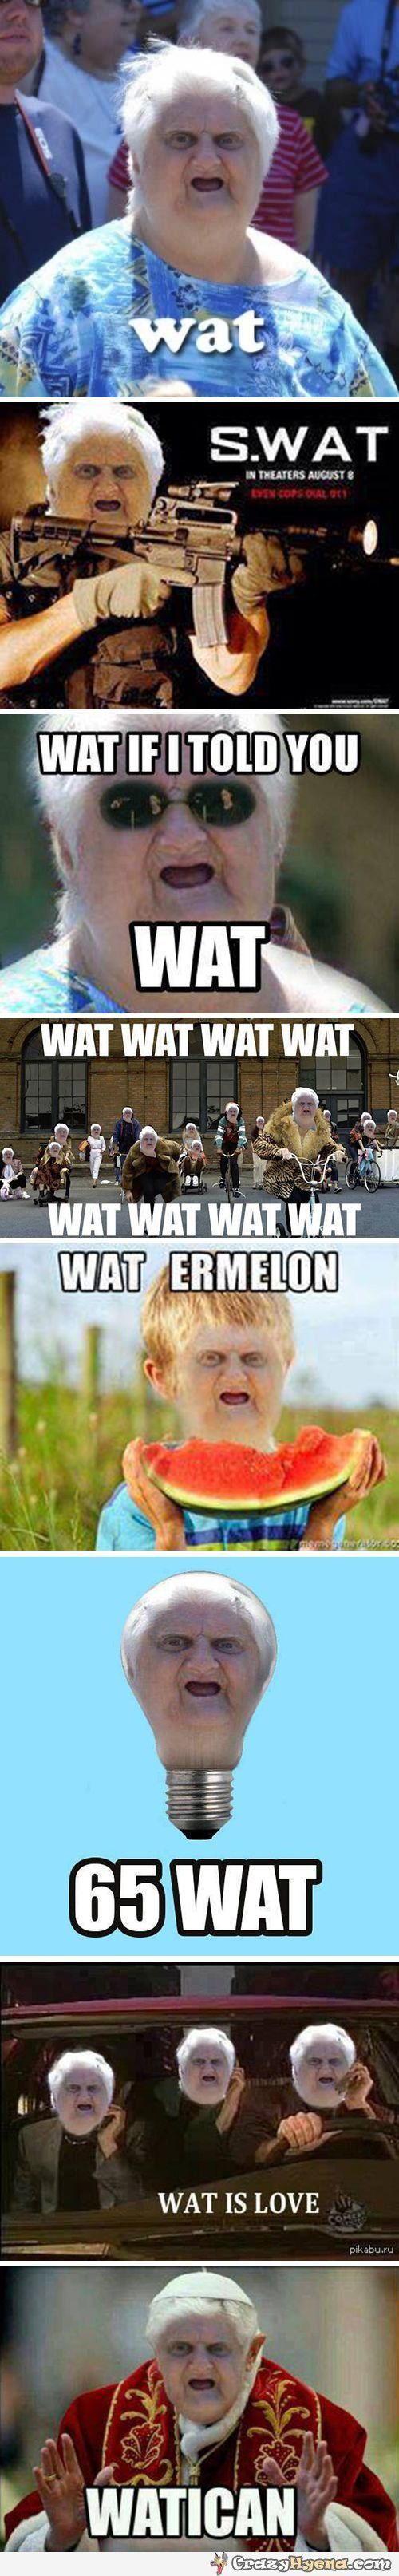 wat-old-lady-meme-compilation: